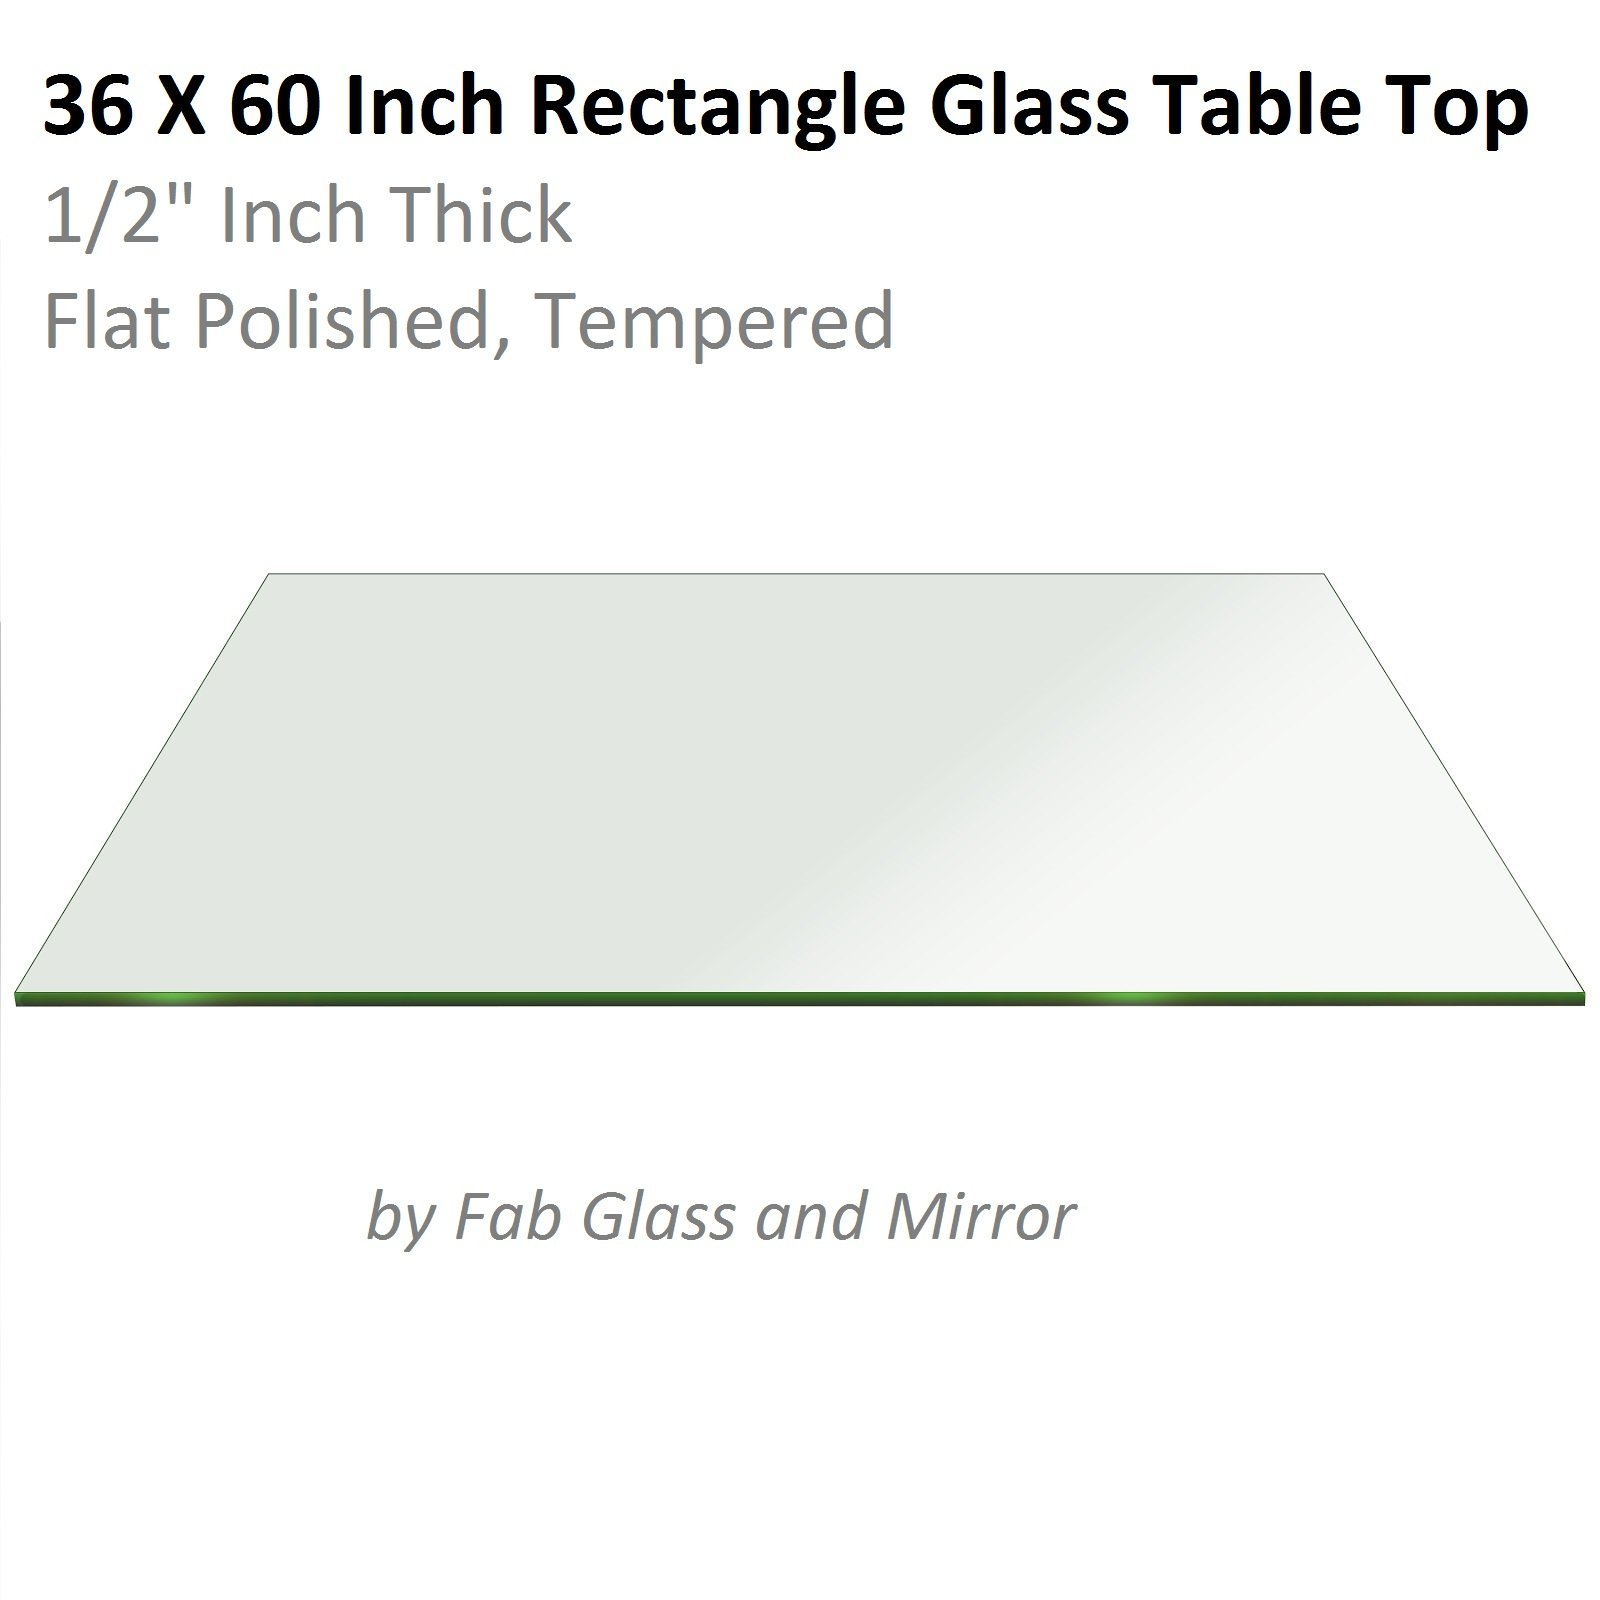 Fab Glass and Mirror Rectangle Glass:30X60 Inch 1/2'' Thick Flat Edge Tempered Radius Corner